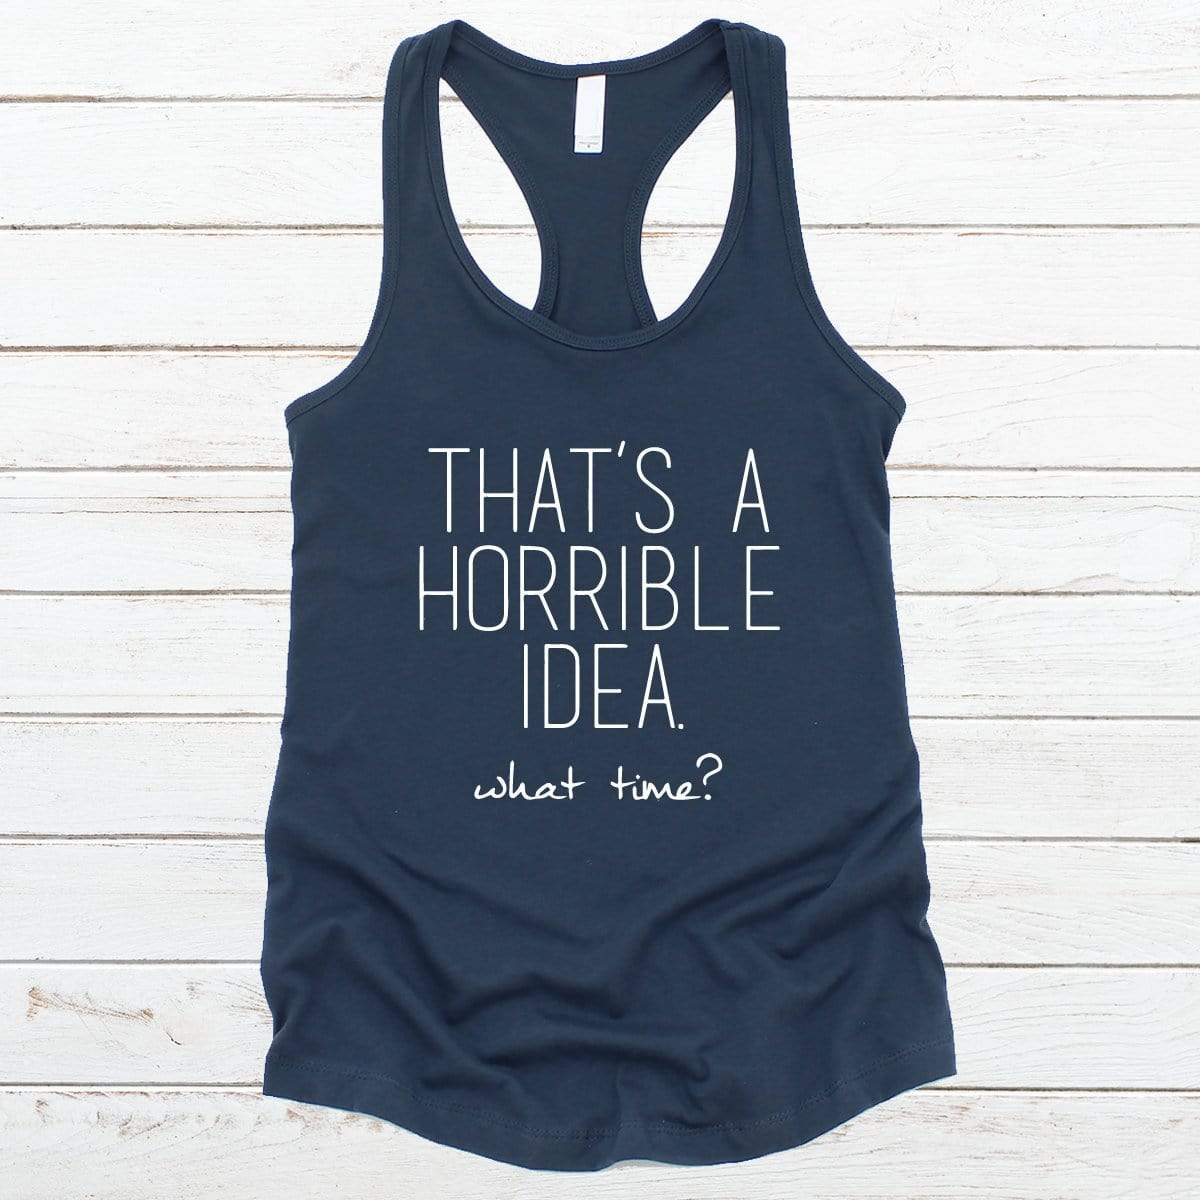 That's A Horrible Idea V-Necks And Tank Tops